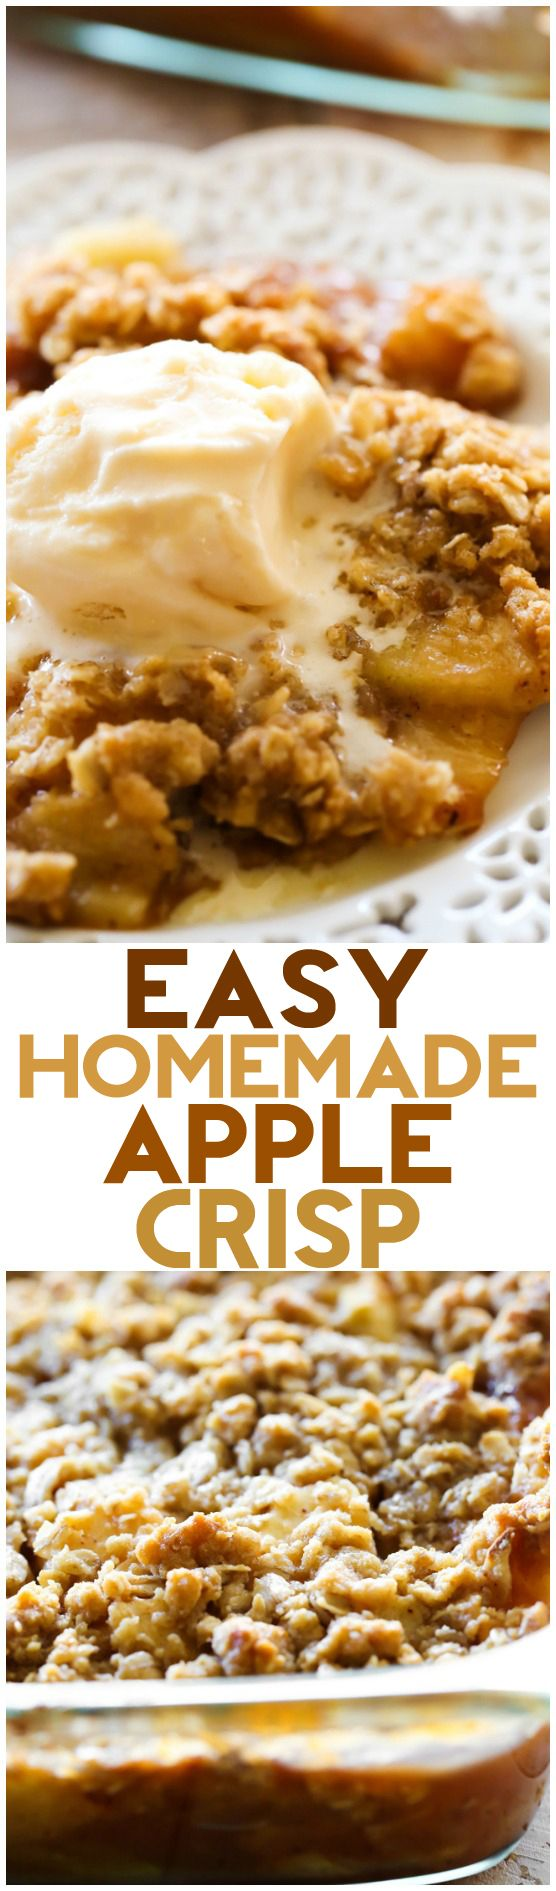 Easy Homemade Apple Crisp... this recipe is absolutely wonderful! Perfect flavor, texture and always a hit!